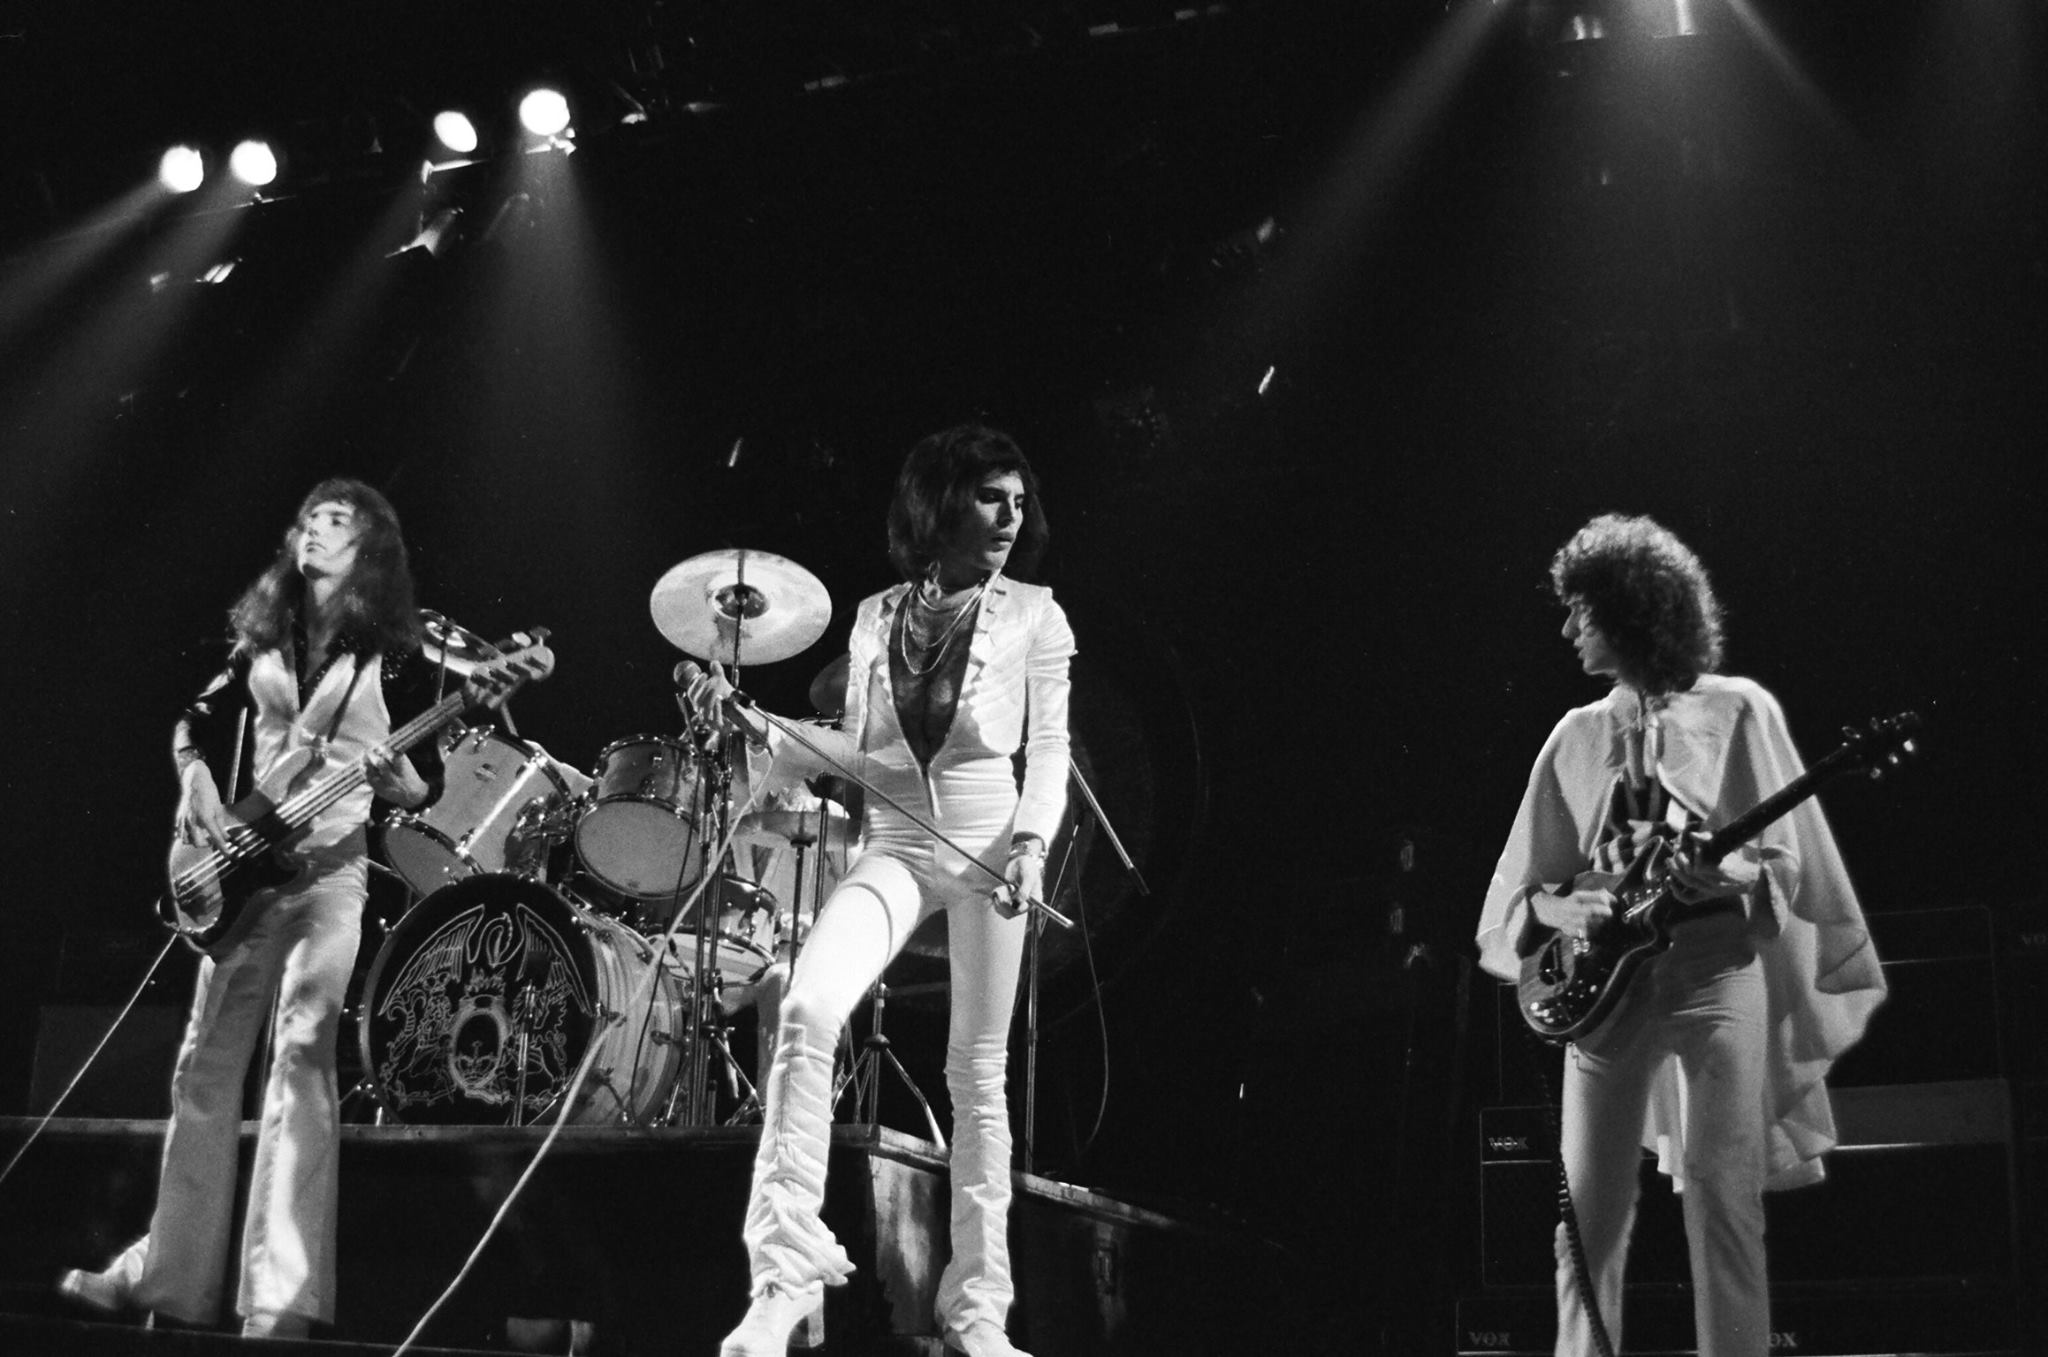 Queen: A Night in Bohemia, un'immagine con i Queen sul palco